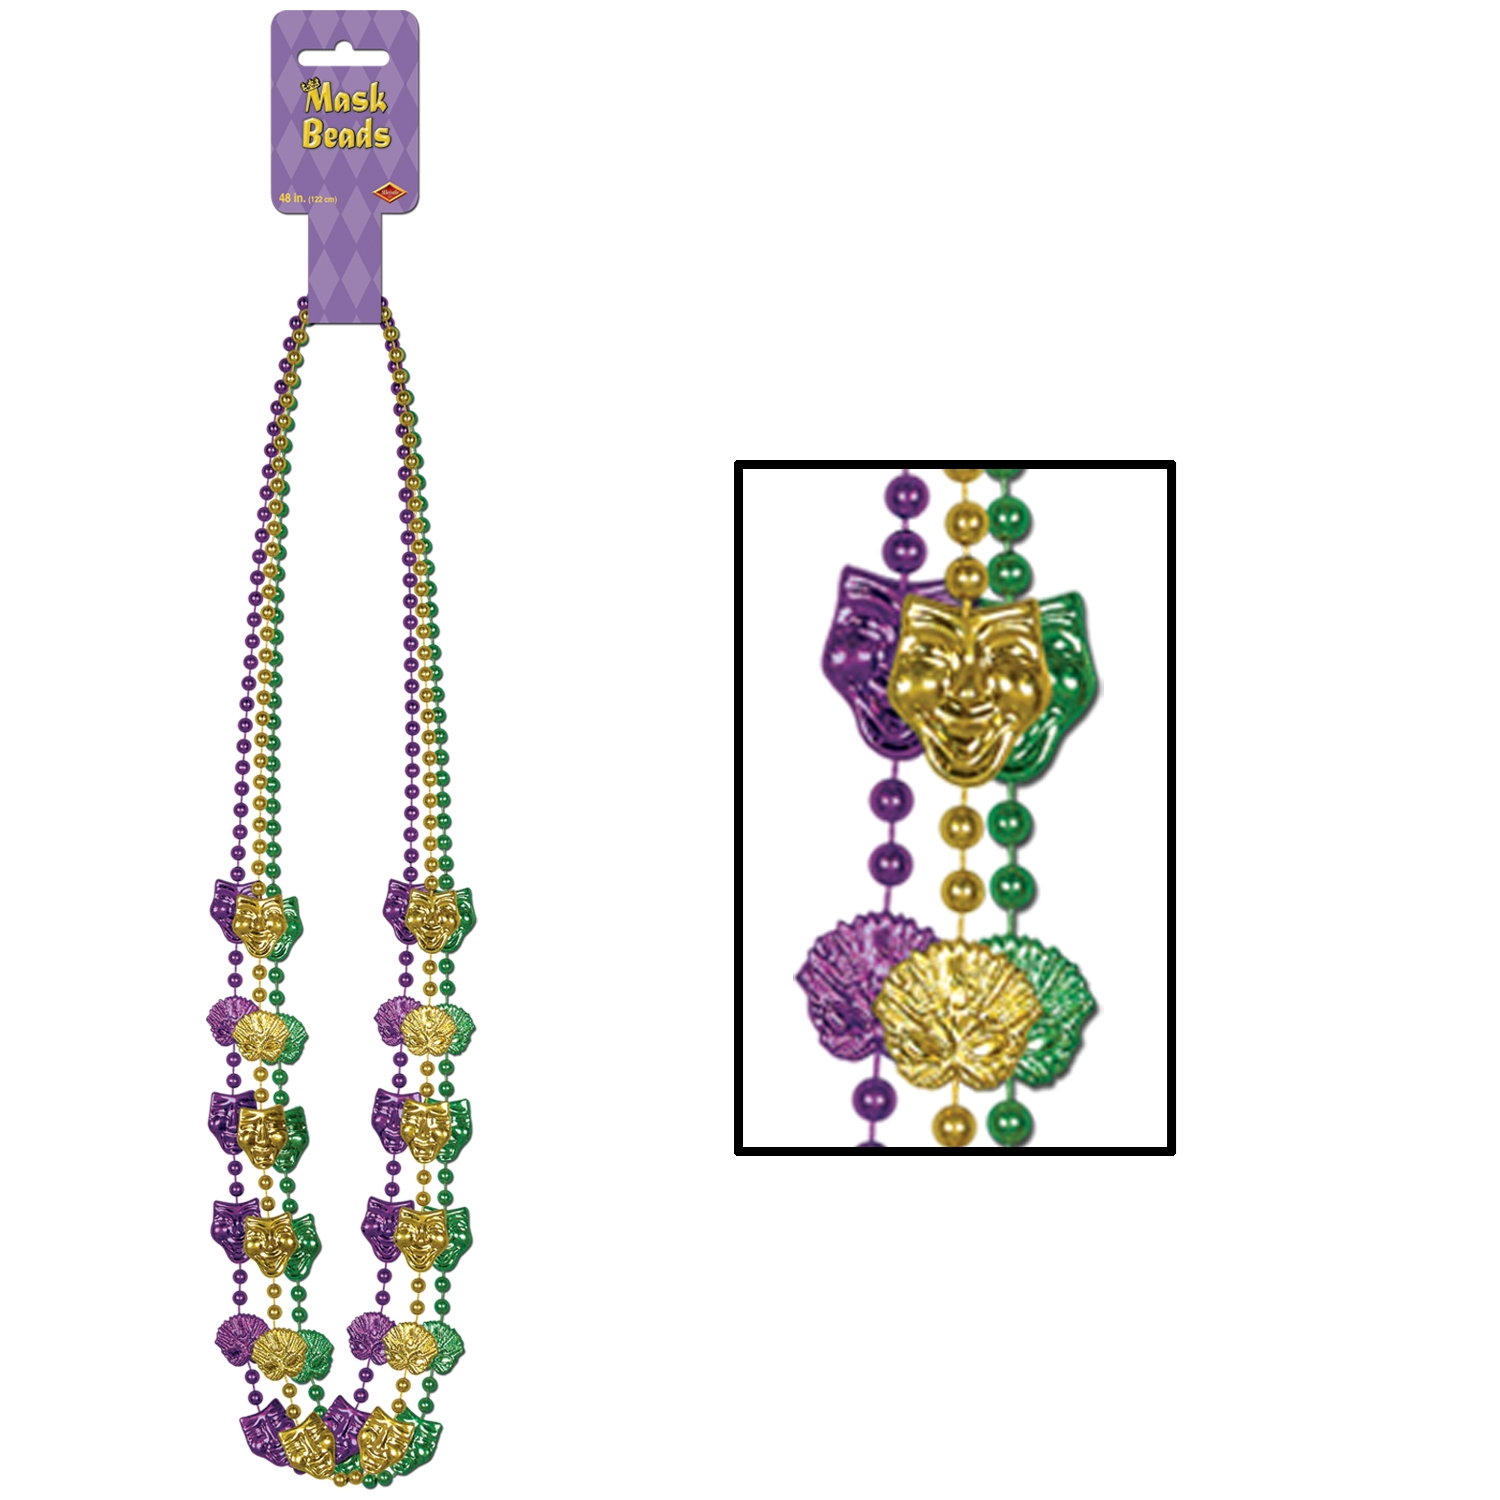 Mardi Gras Mask Beads (Pack of 36) .